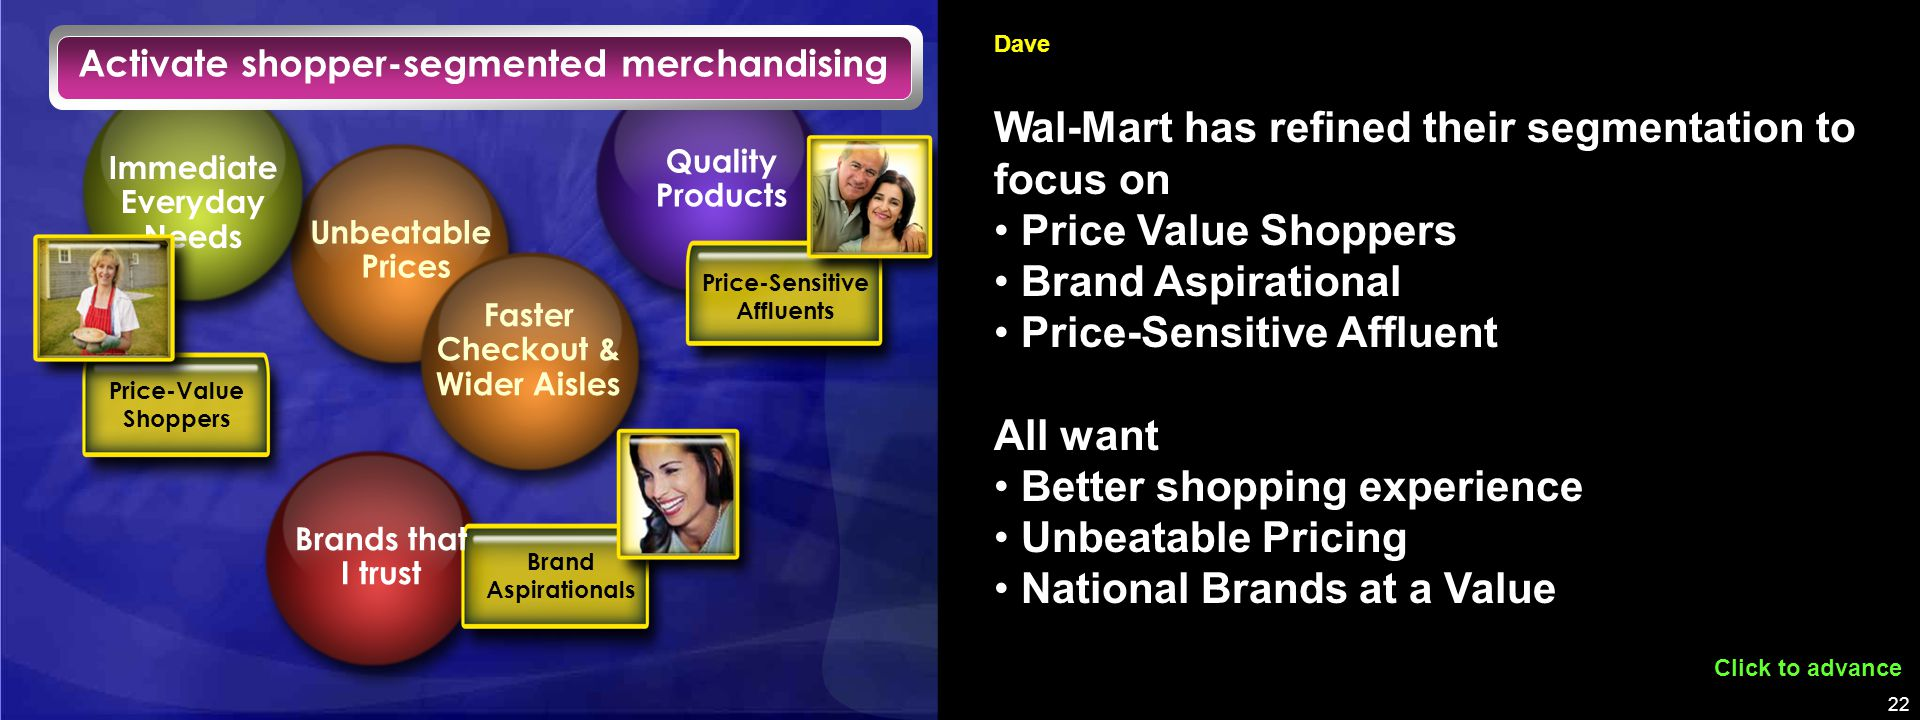 22 Activate shopper-segmented merchandising Click to advance Dave Wal-Mart has refined their segmentation to focus on Price Value Shoppers Brand Aspirational Price-Sensitive Affluent All want Better shopping experience Unbeatable Pricing National Brands at a Value Price-Value Shoppers Brand Aspirationals Price-Sensitive Affluents Unbeatable Prices Immediate Everyday Needs Brands that I trust Quality Products Faster Checkout & Wider Aisles